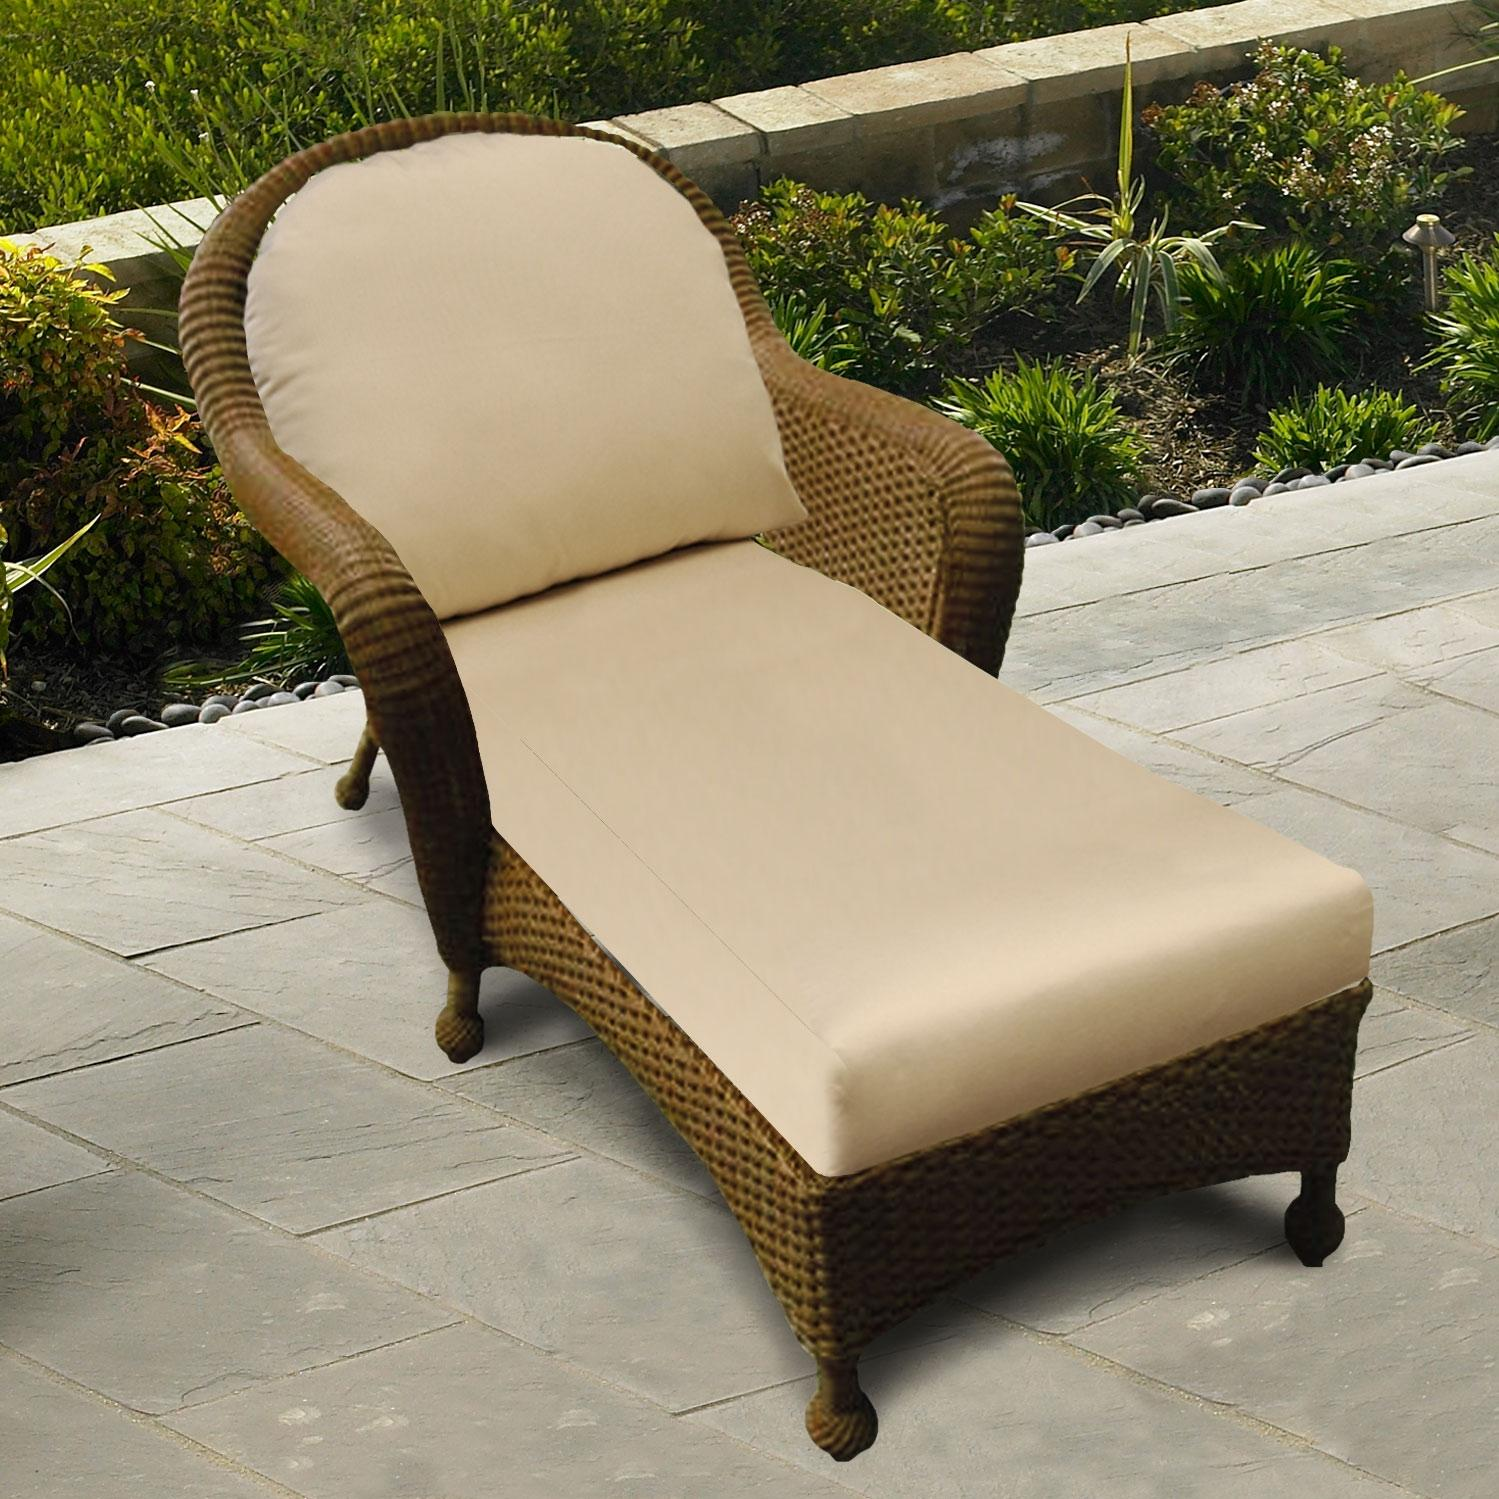 Furniture outdoor furniture chaise cedar chaise for Cedar chaise lounge